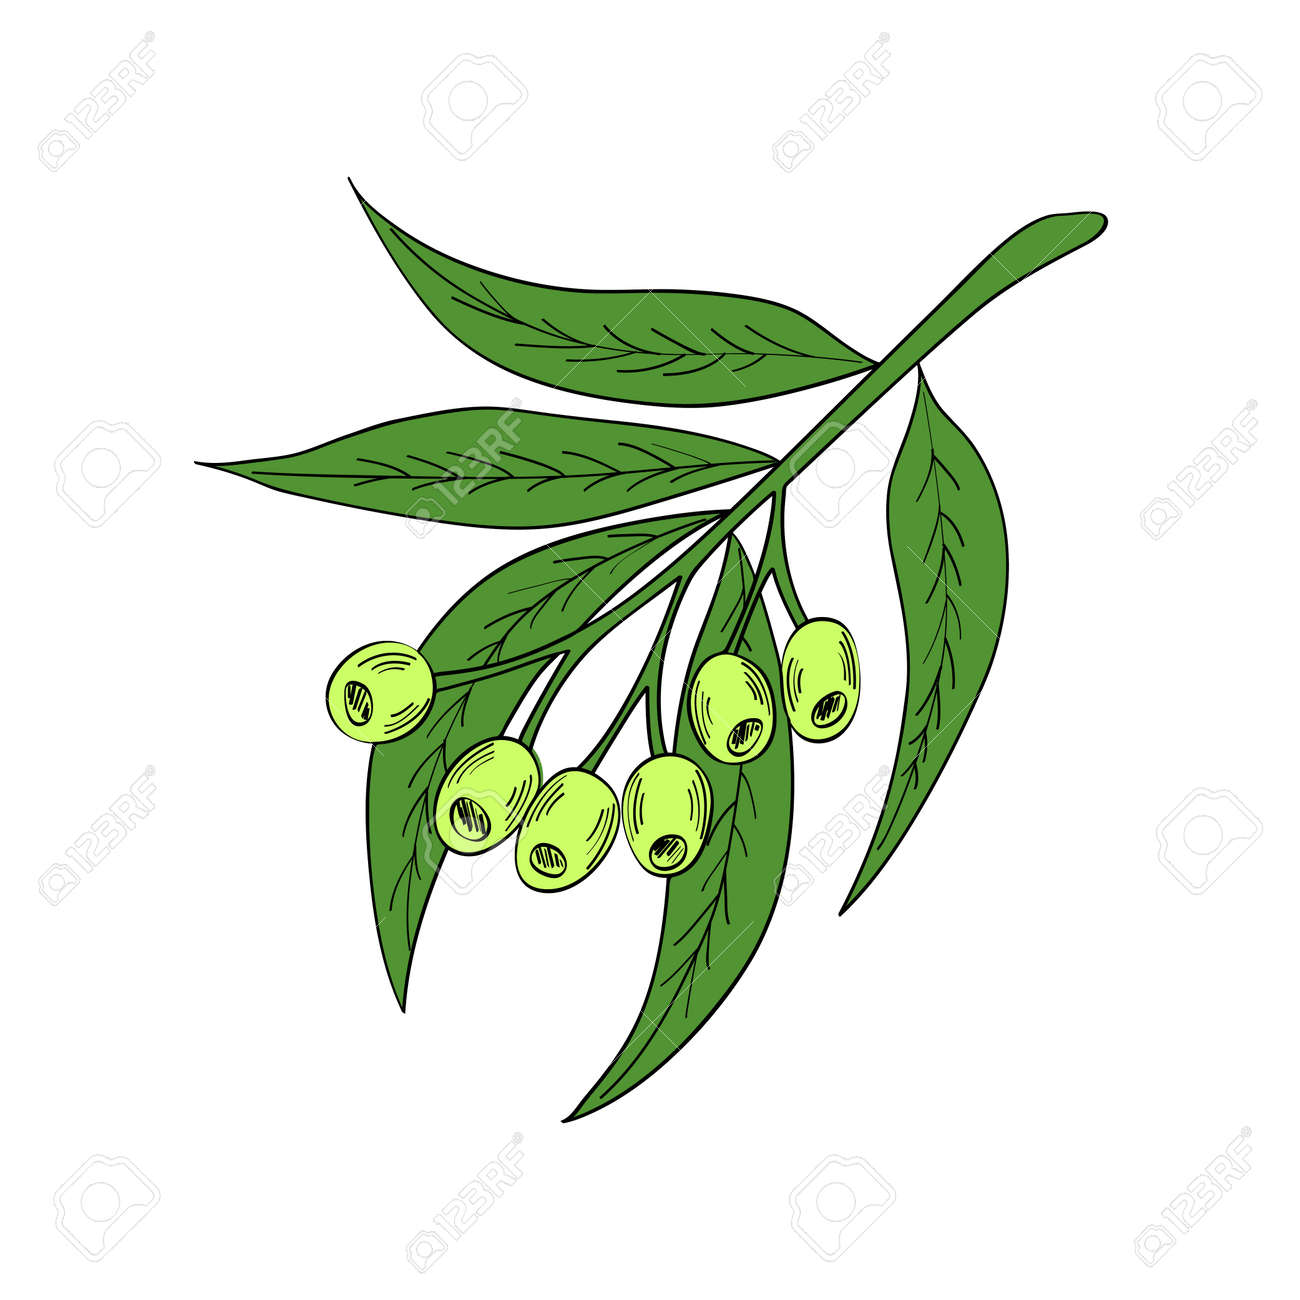 Hand Drawn Eucalyptus Leaves And Fruits Eucalyptus Plant Branch Royalty Free Cliparts Vectors And Stock Illustration Image 76737381